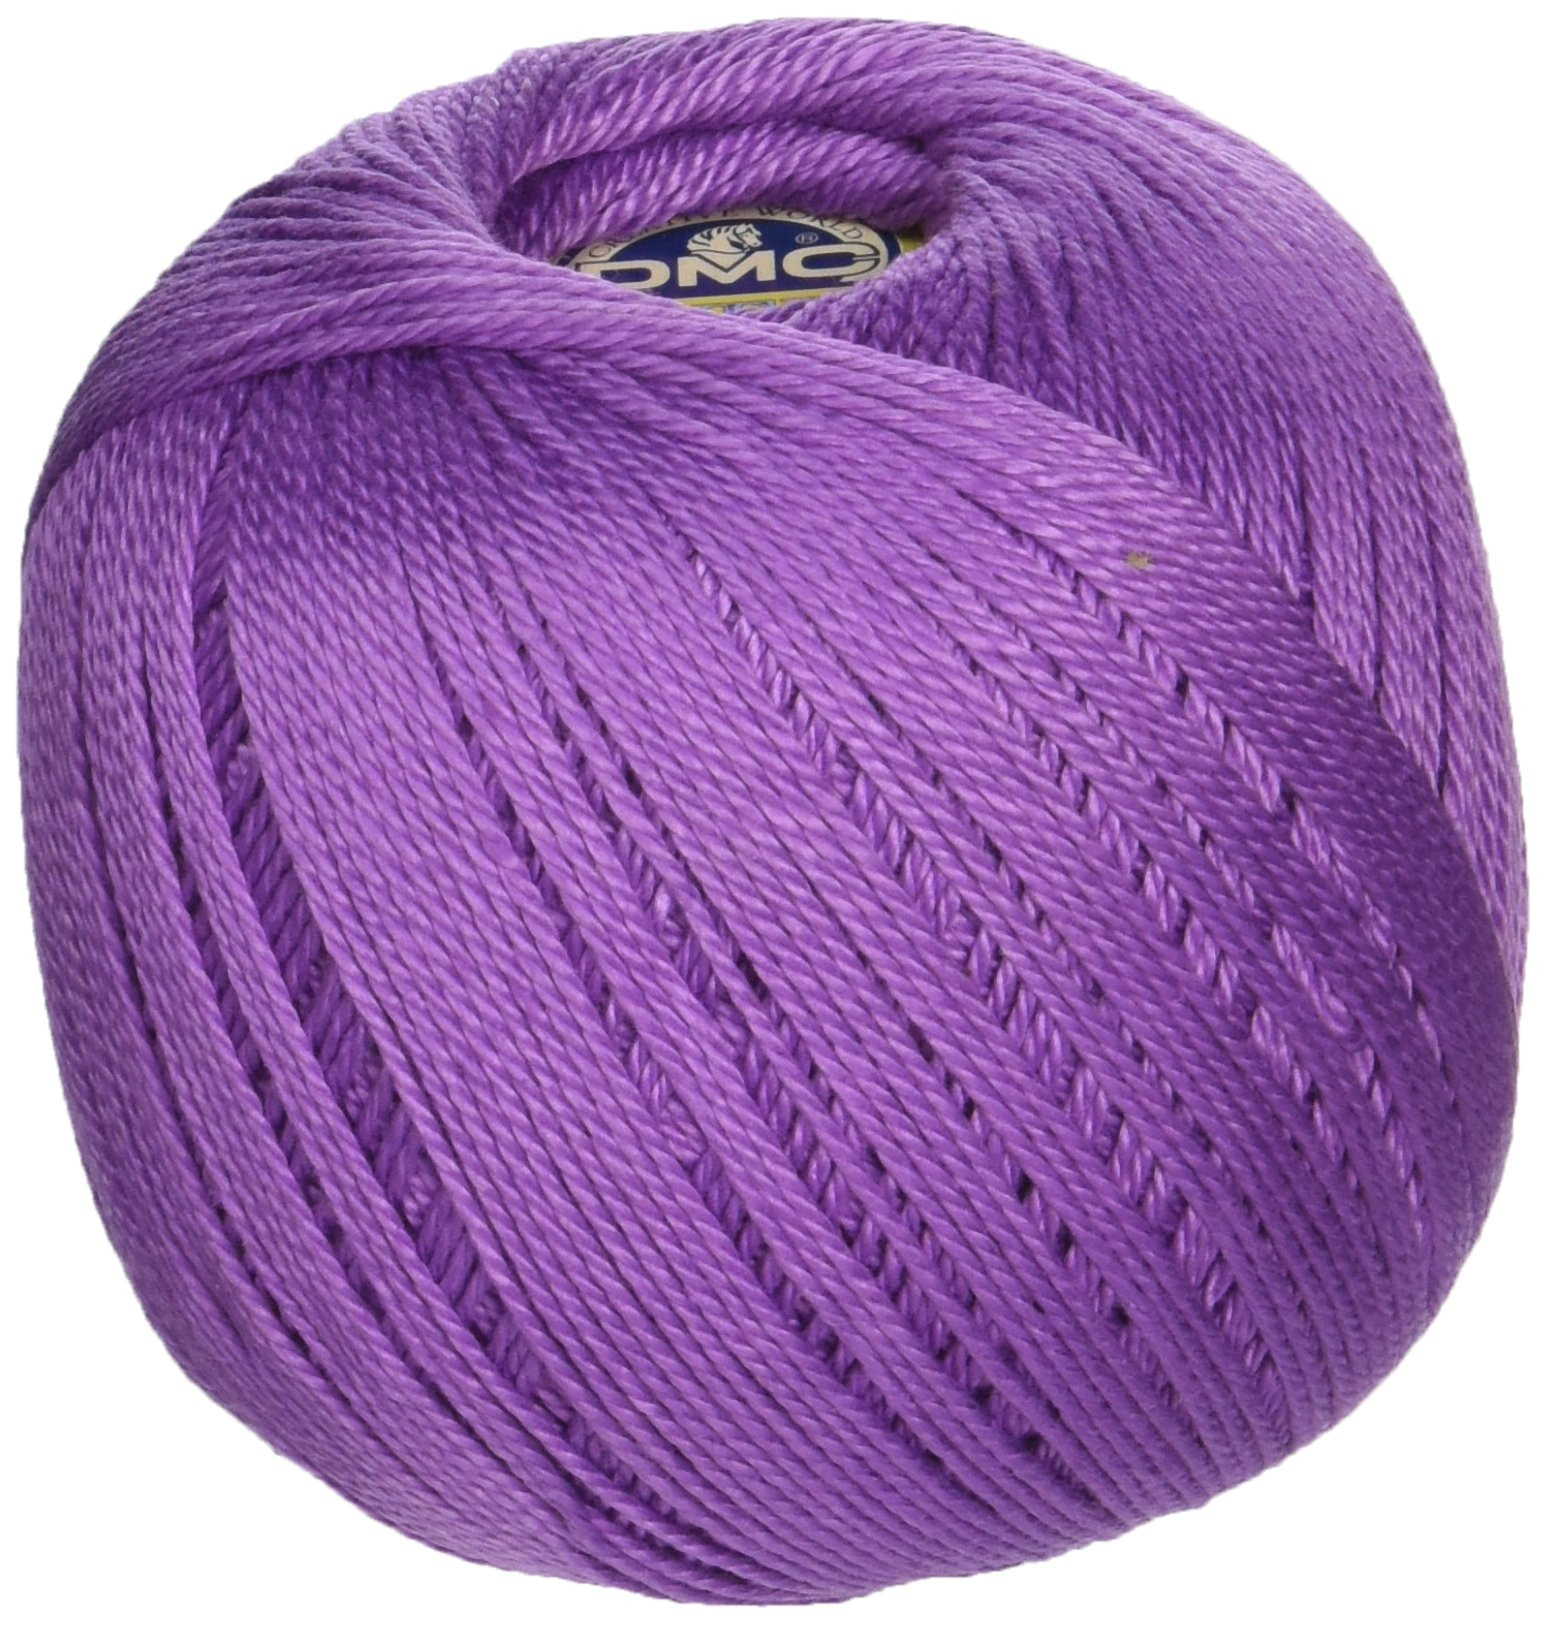 Size 3 Yarn Inspirational Galleon Dmc Petra Crochet Cotton Thread Size 3 Of Amazing 40 Pictures Size 3 Yarn